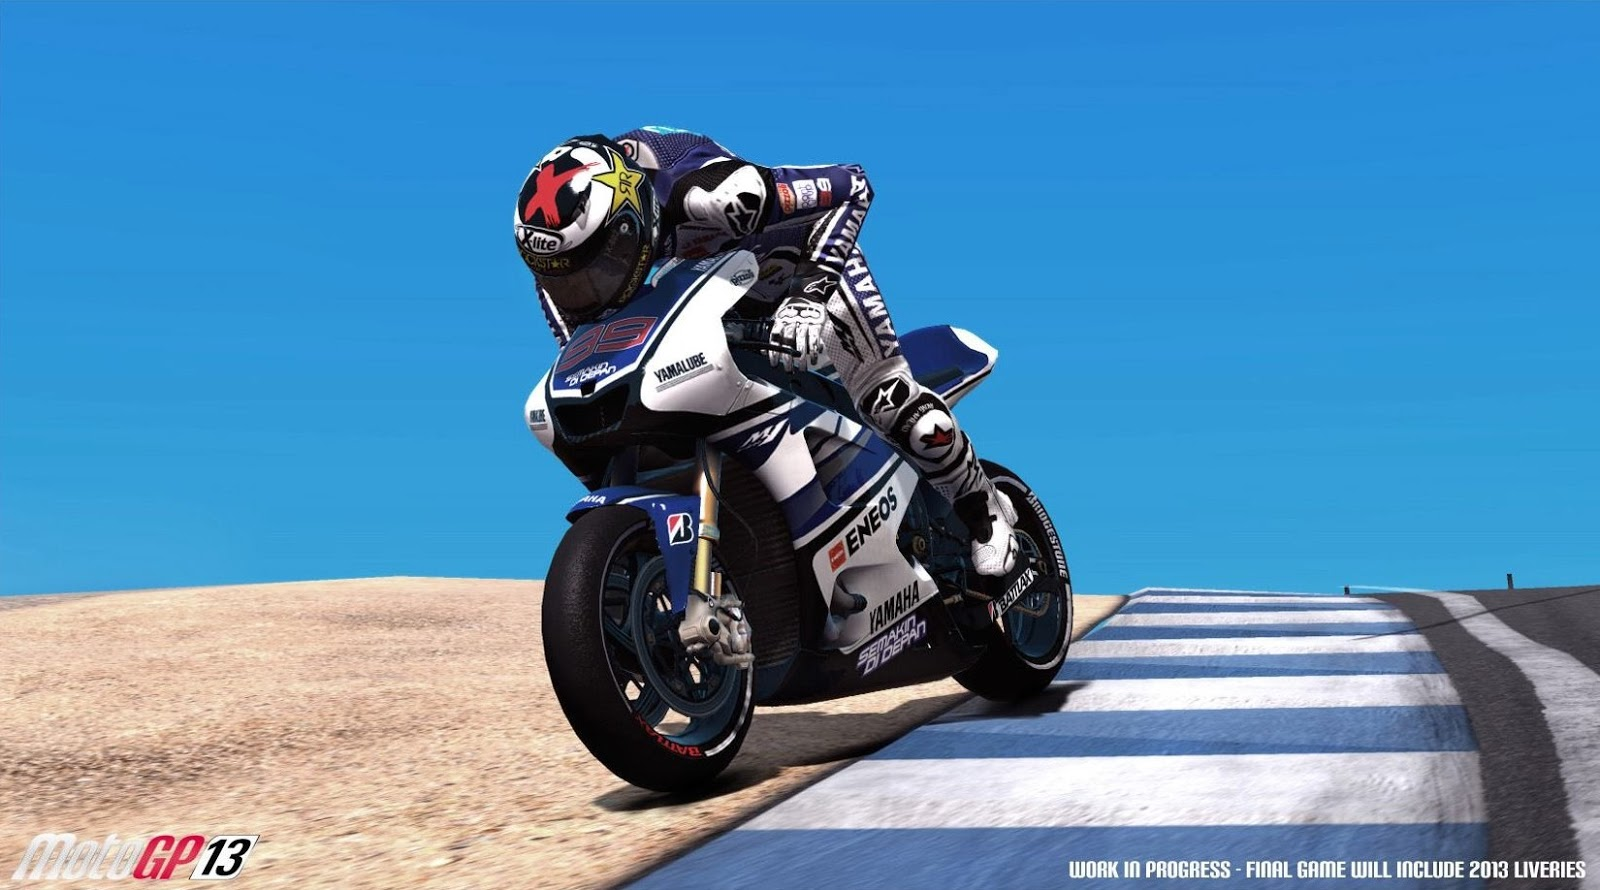 Moto Gp 13 (direct Link) | Highly Compressed PC Games